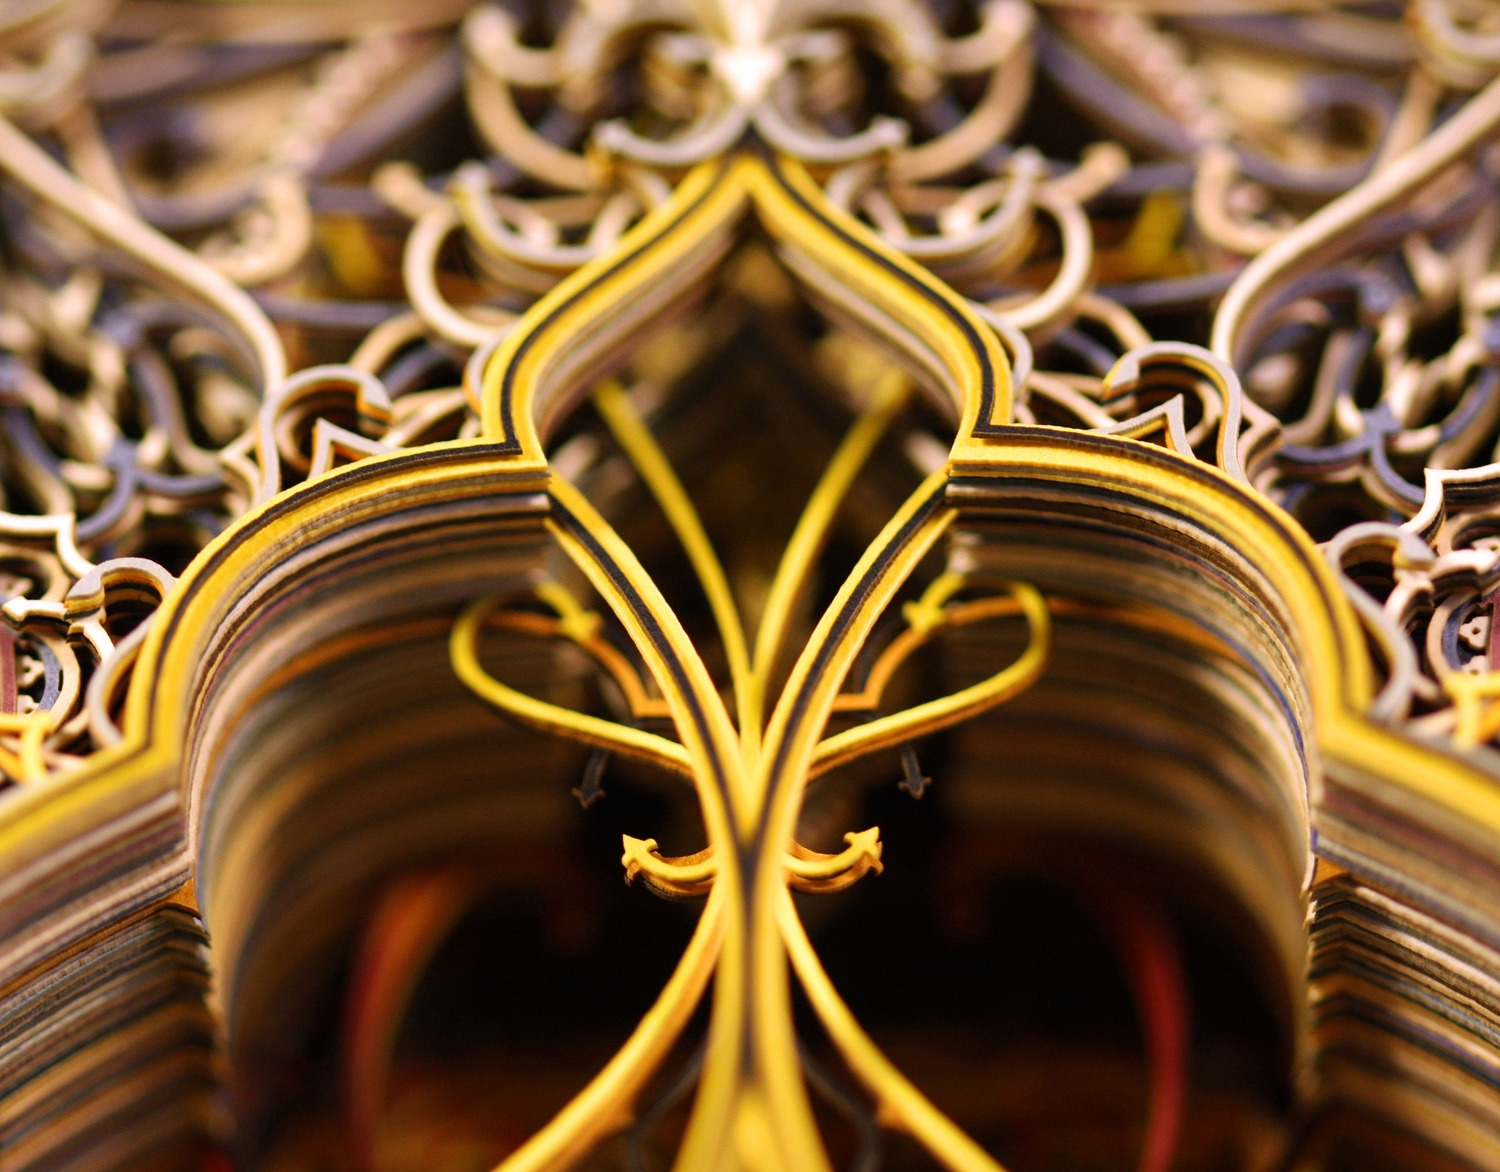 intricate-stained-glass-windows-colorful-laser-cut-paper-eric-standley-arch6-detail-7-strictlypaper_01